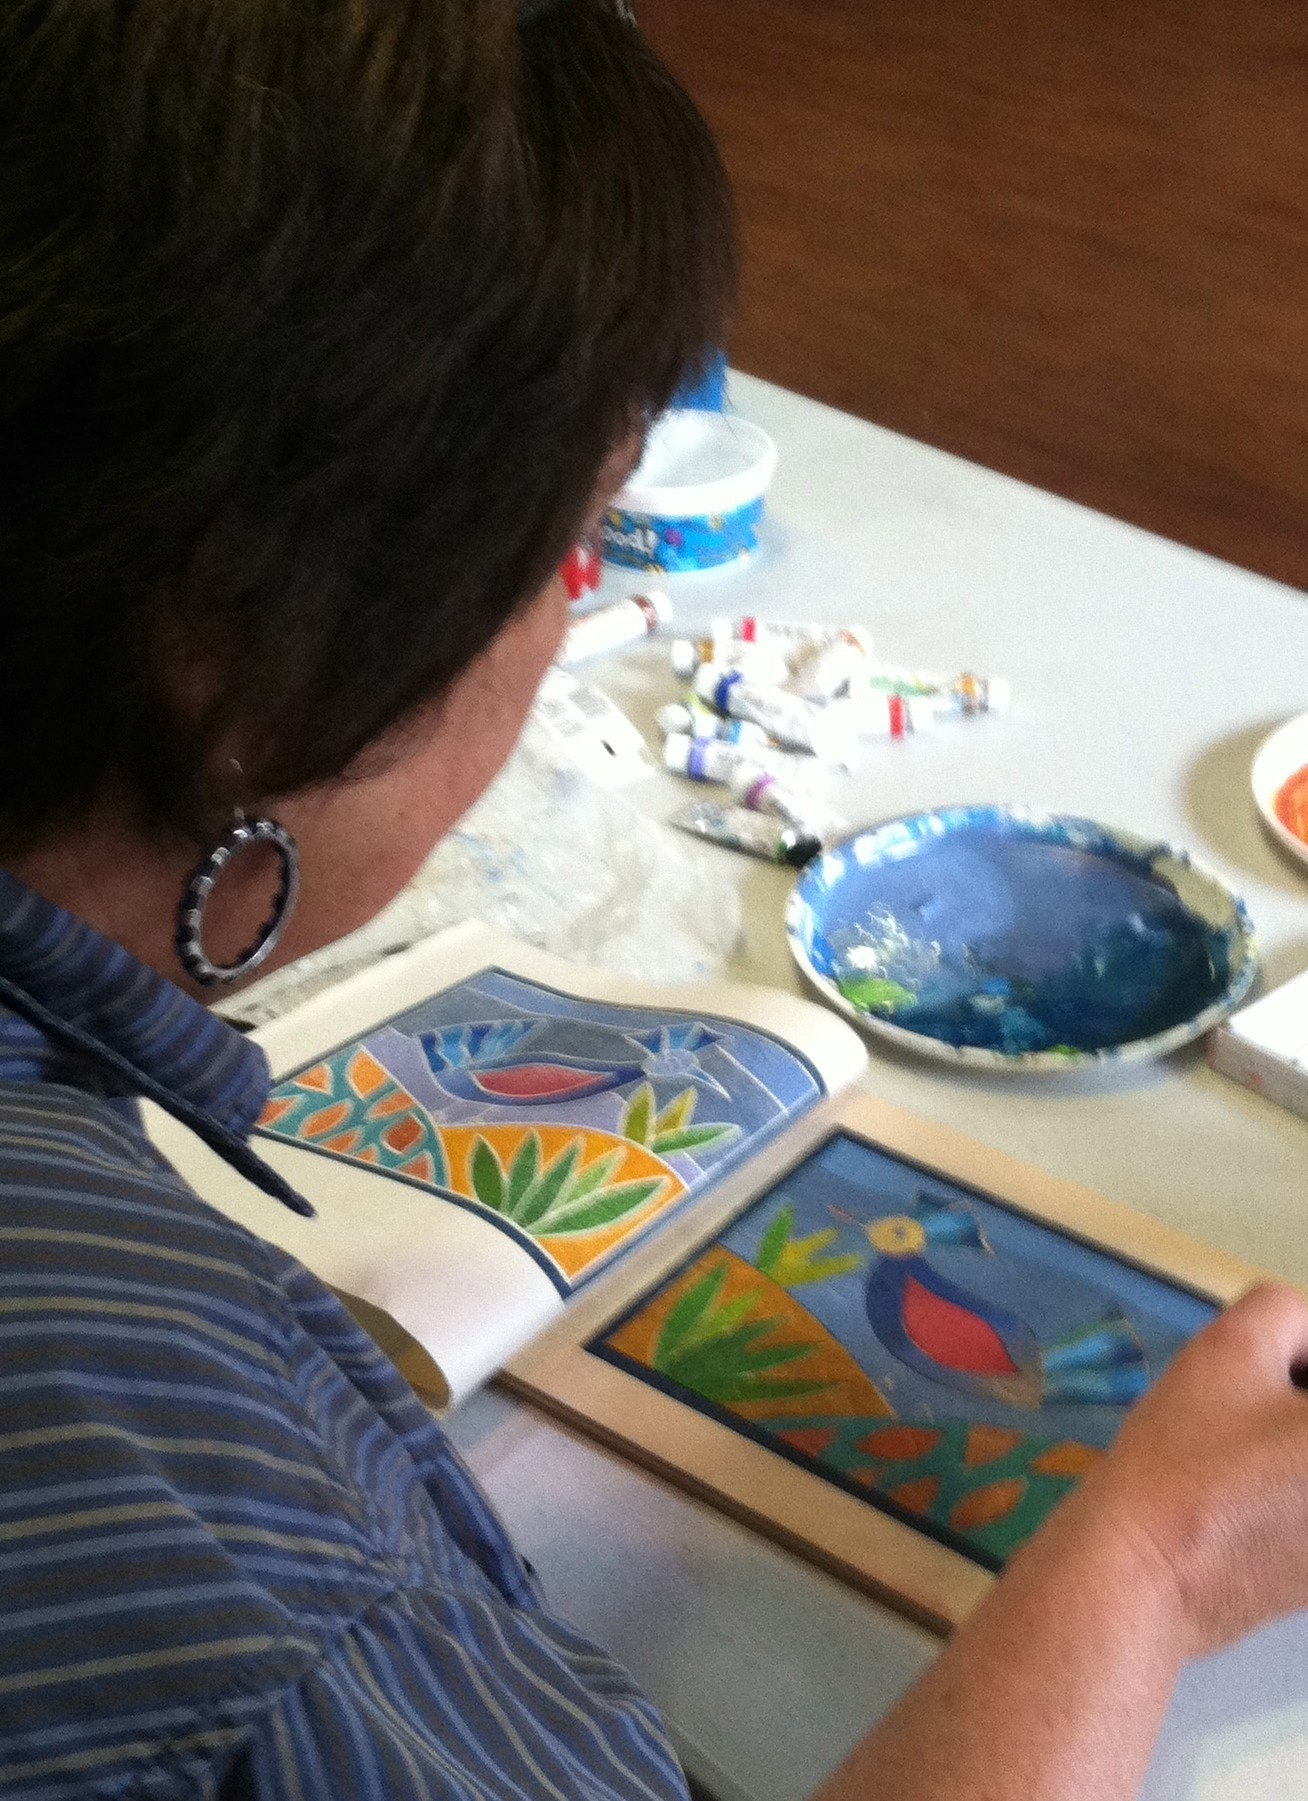 Painting the wood block with watercolor